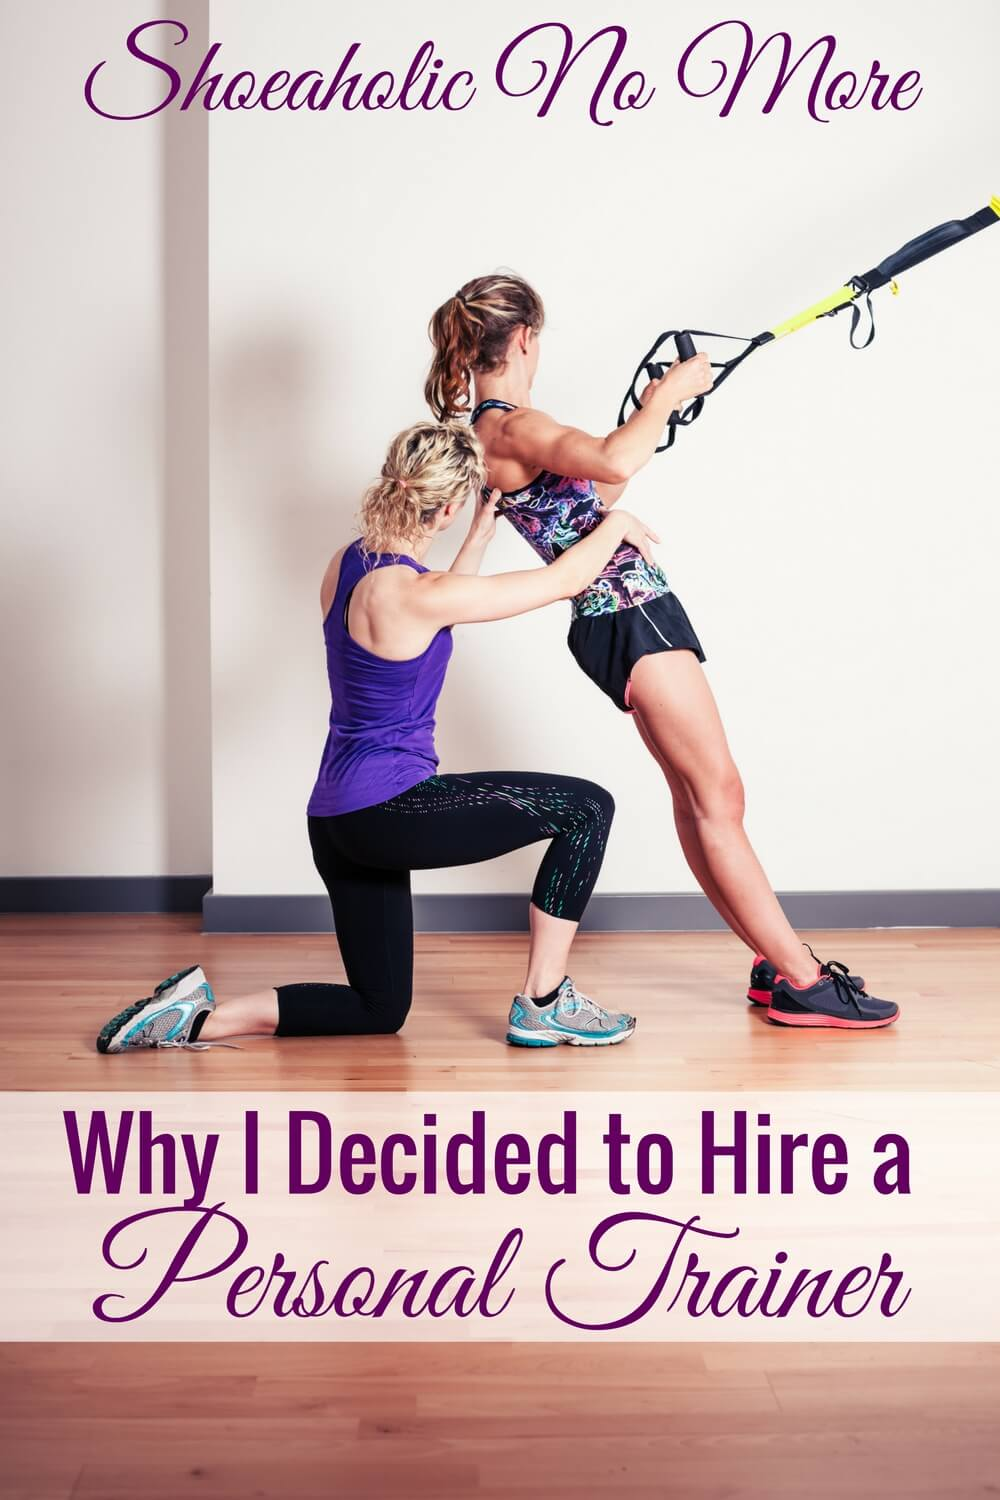 Maybe hiring a personal trainer is worth the cost after all. I love why this woman decided to hire a personal trainer!